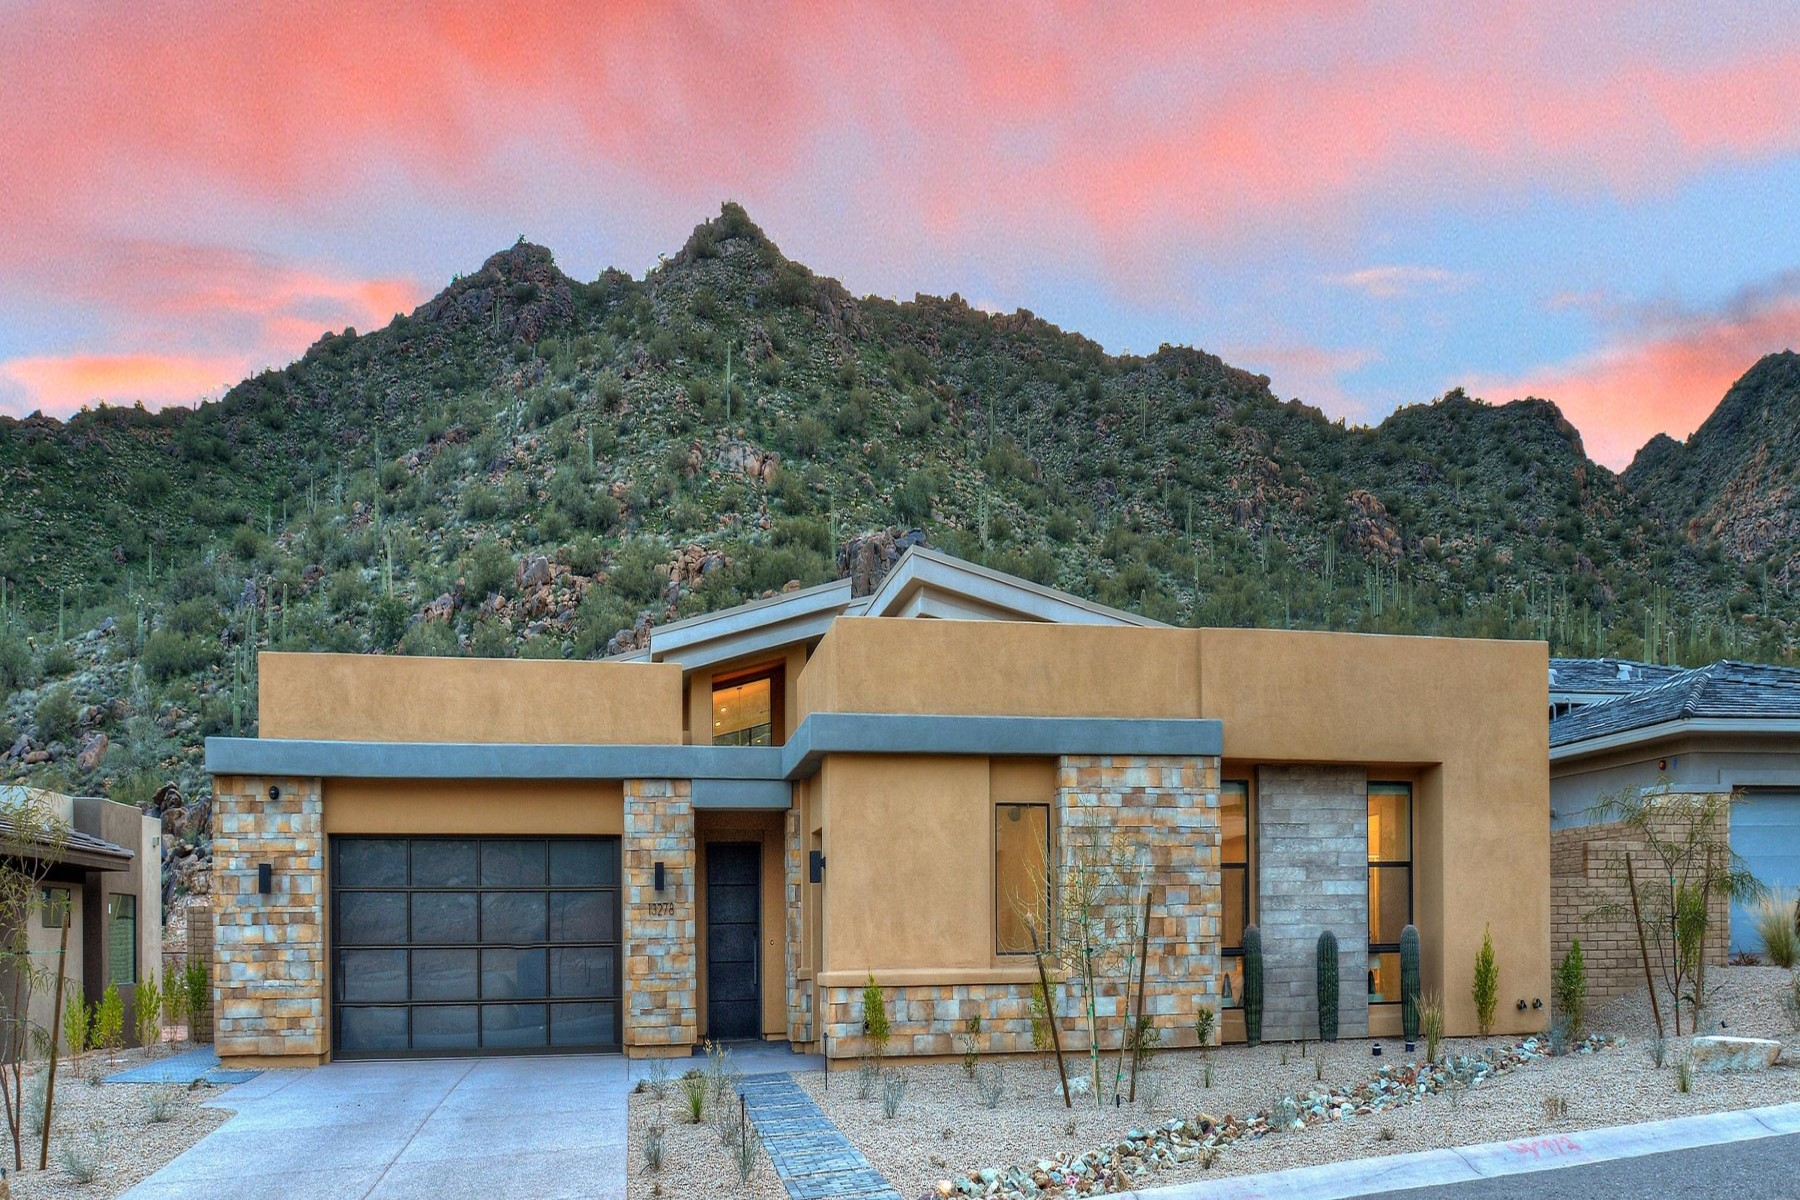 single family homes for Active at Adero Canyon 13278 N STONE VIEW TRL Fountain Hills, Arizona 85268 United States